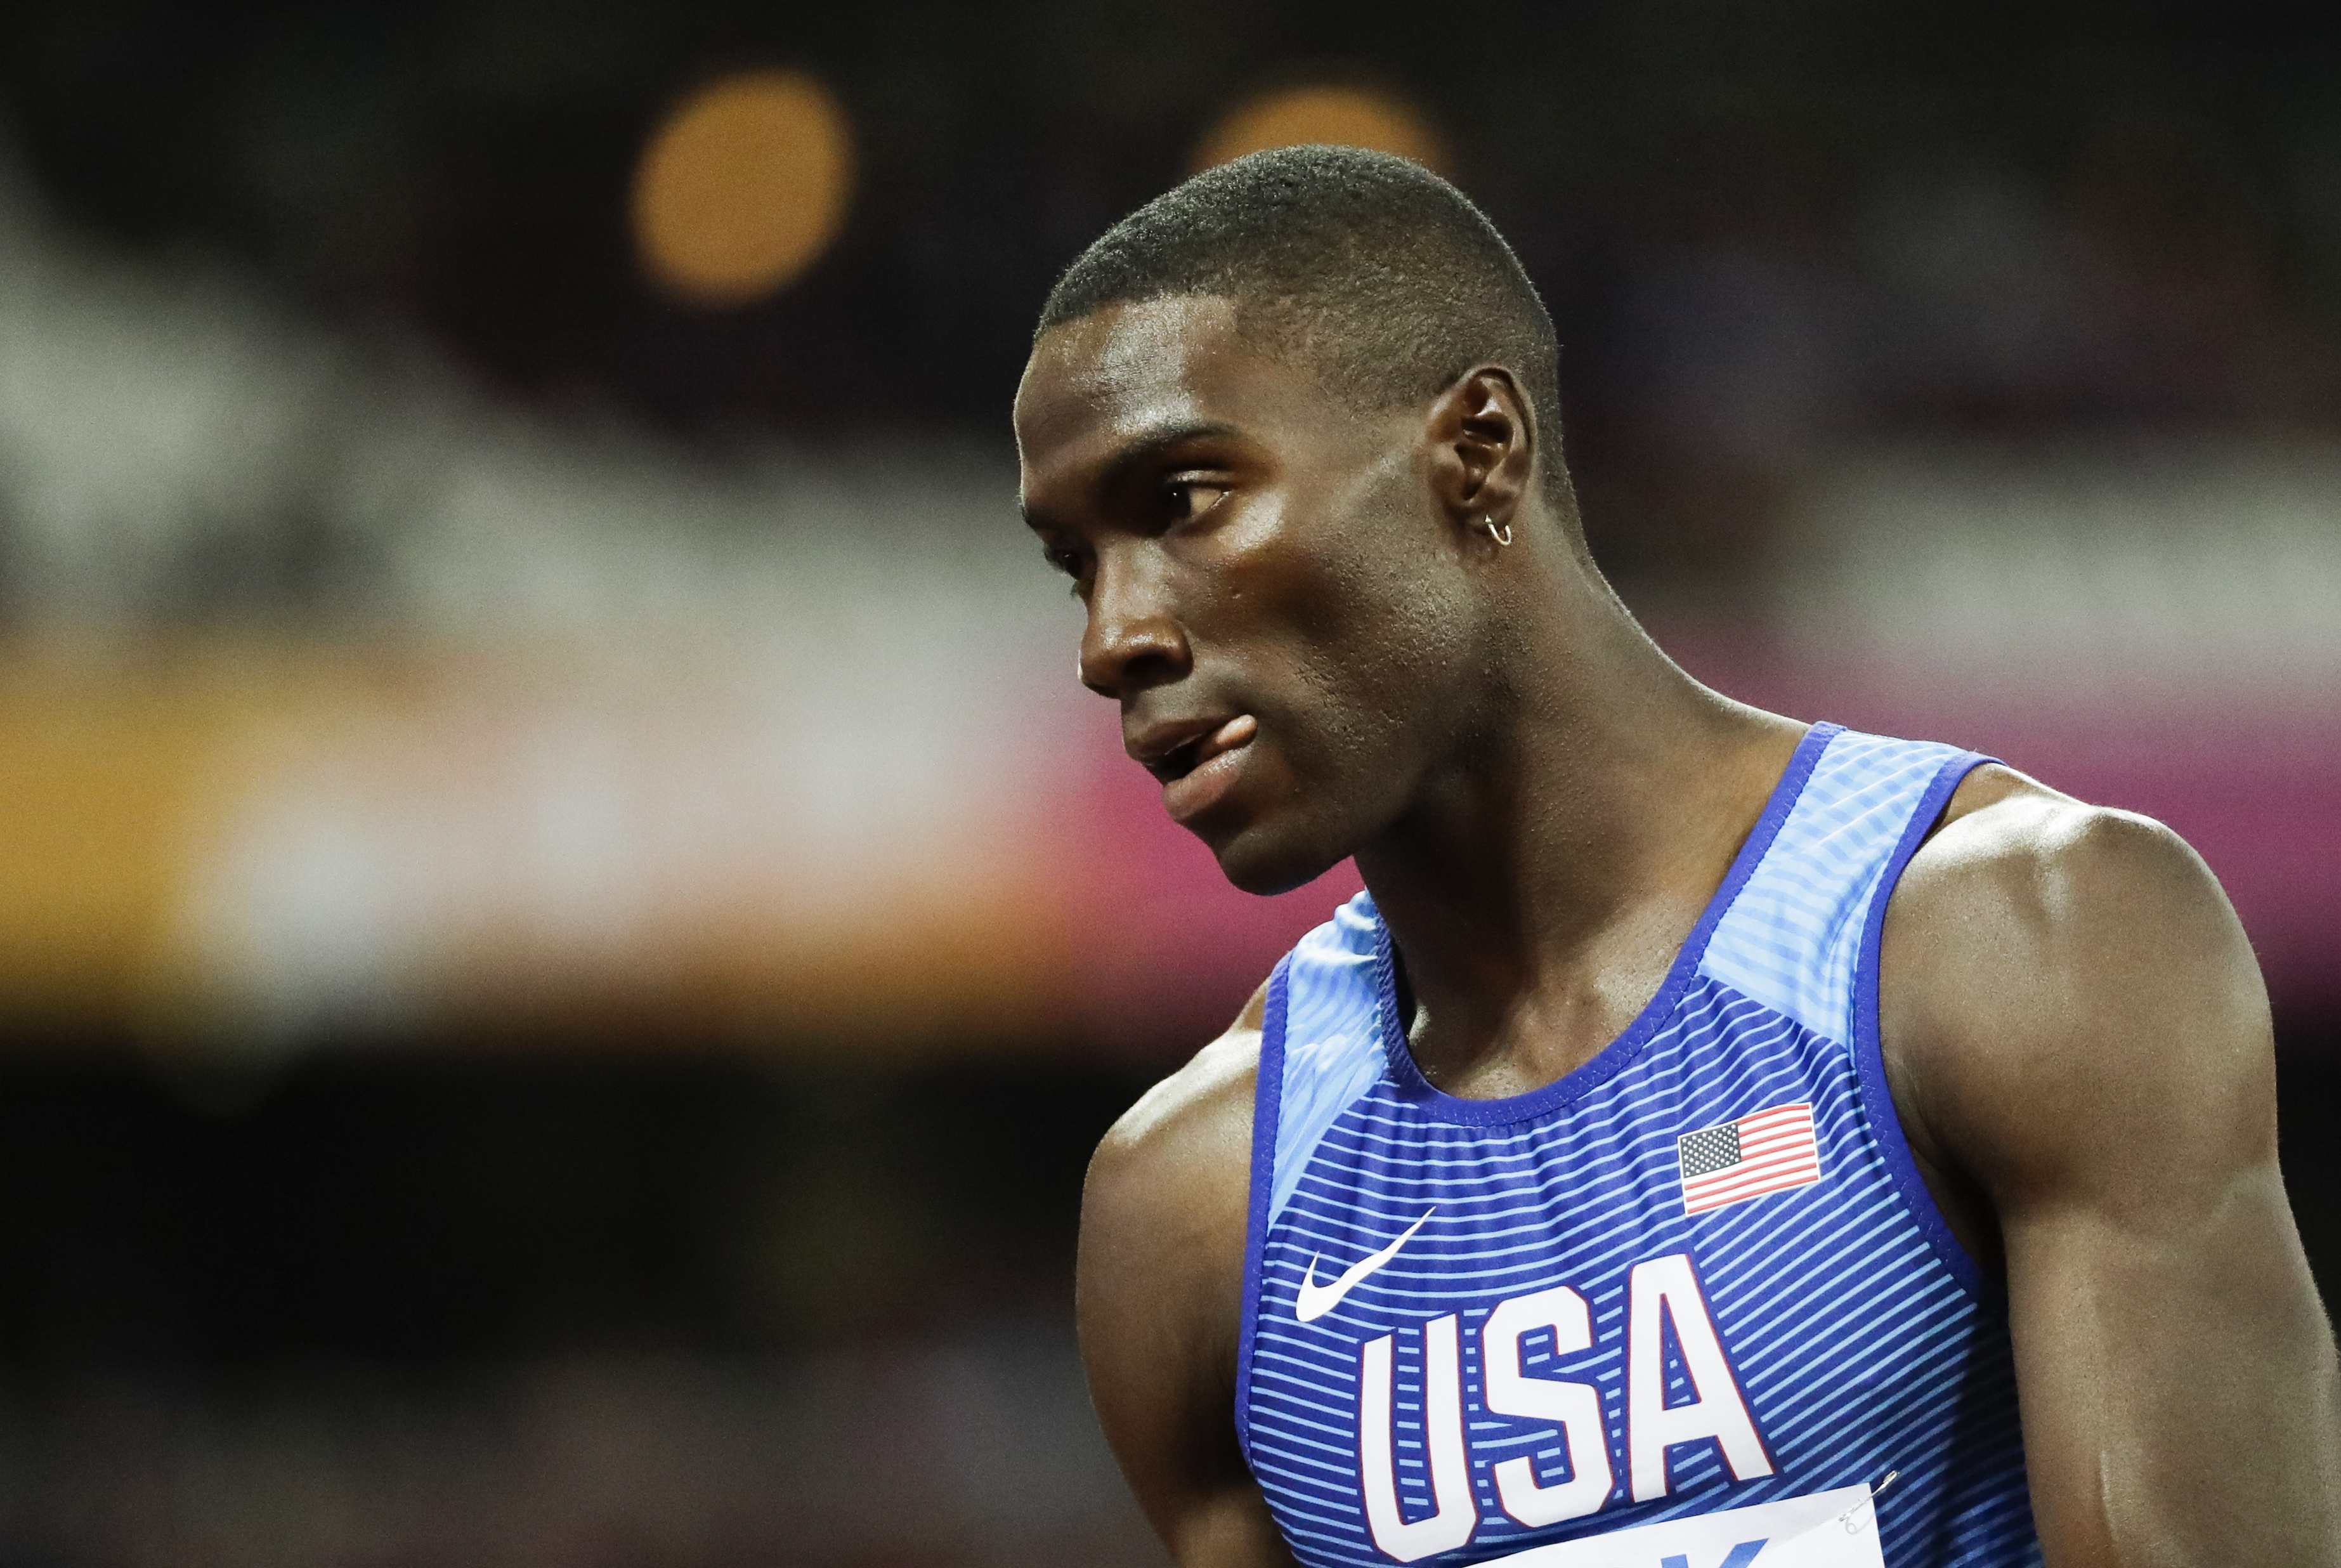 United States' Kerron Clement leaves the track after finishing a Men's 400m hurdles semifinal during the World Athletics Championships in London Monday, Aug. 7, 2017. (AP Photo/David J. Phillip)